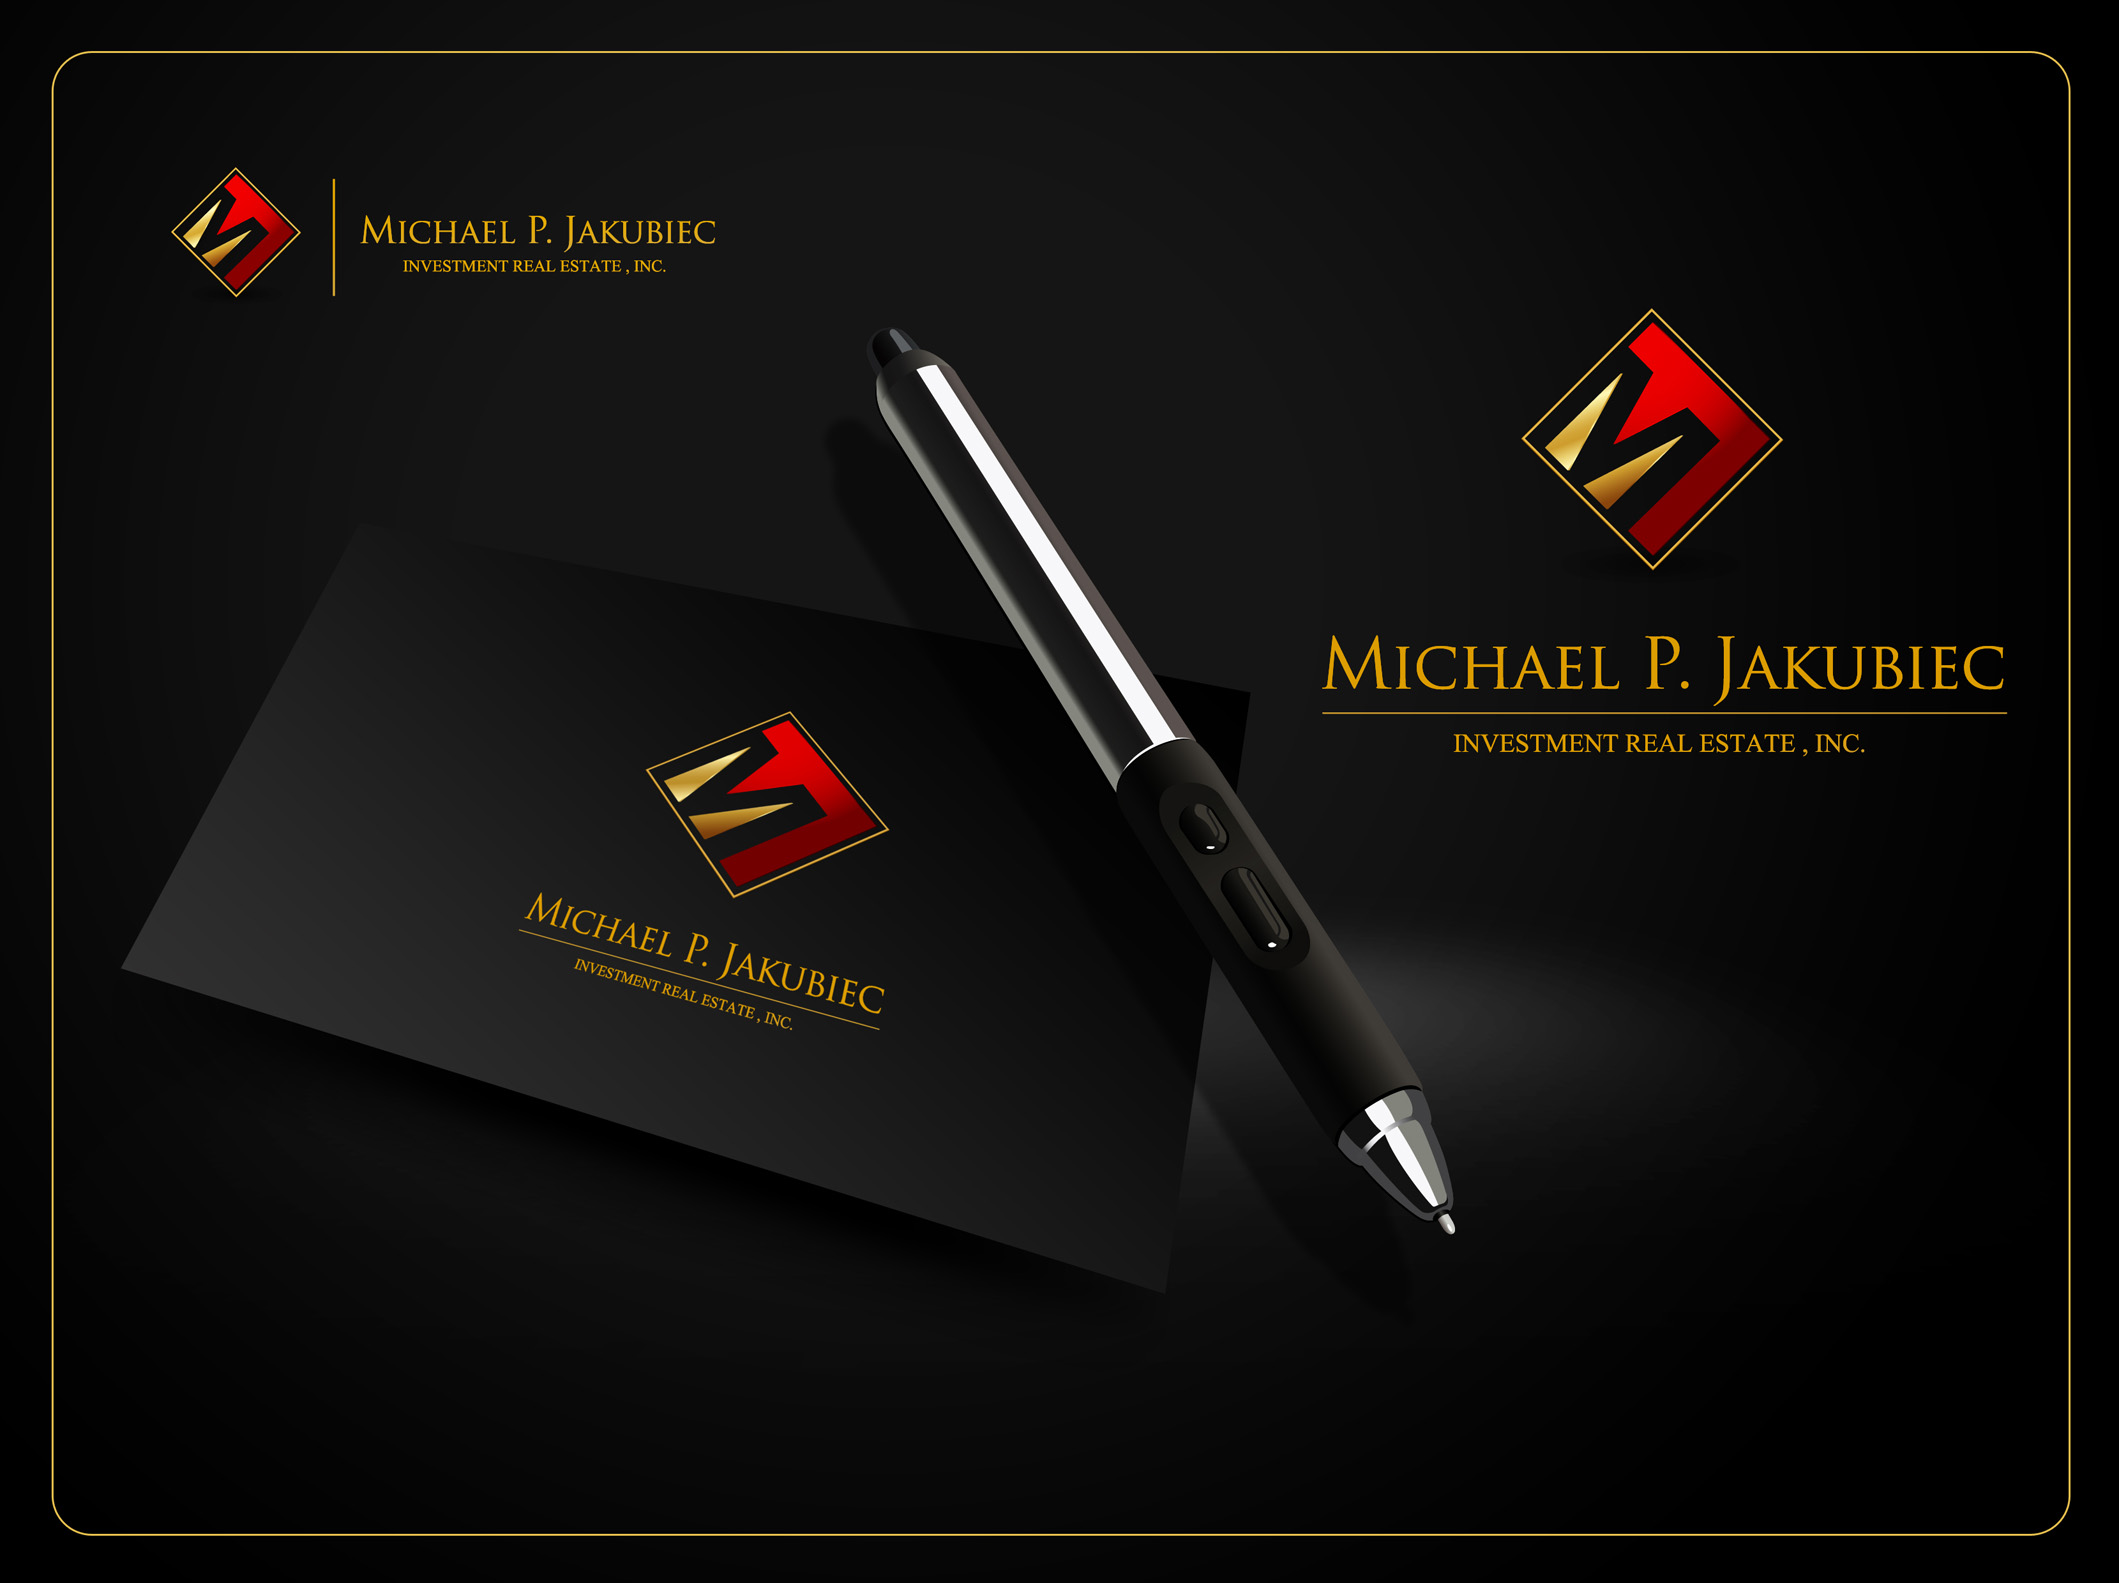 Logo Design by Mark Anthony Moreto Jordan - Entry No. 70 in the Logo Design Contest New Logo Design for Michael P. Jakubiec Investment Real Estate, Inc..